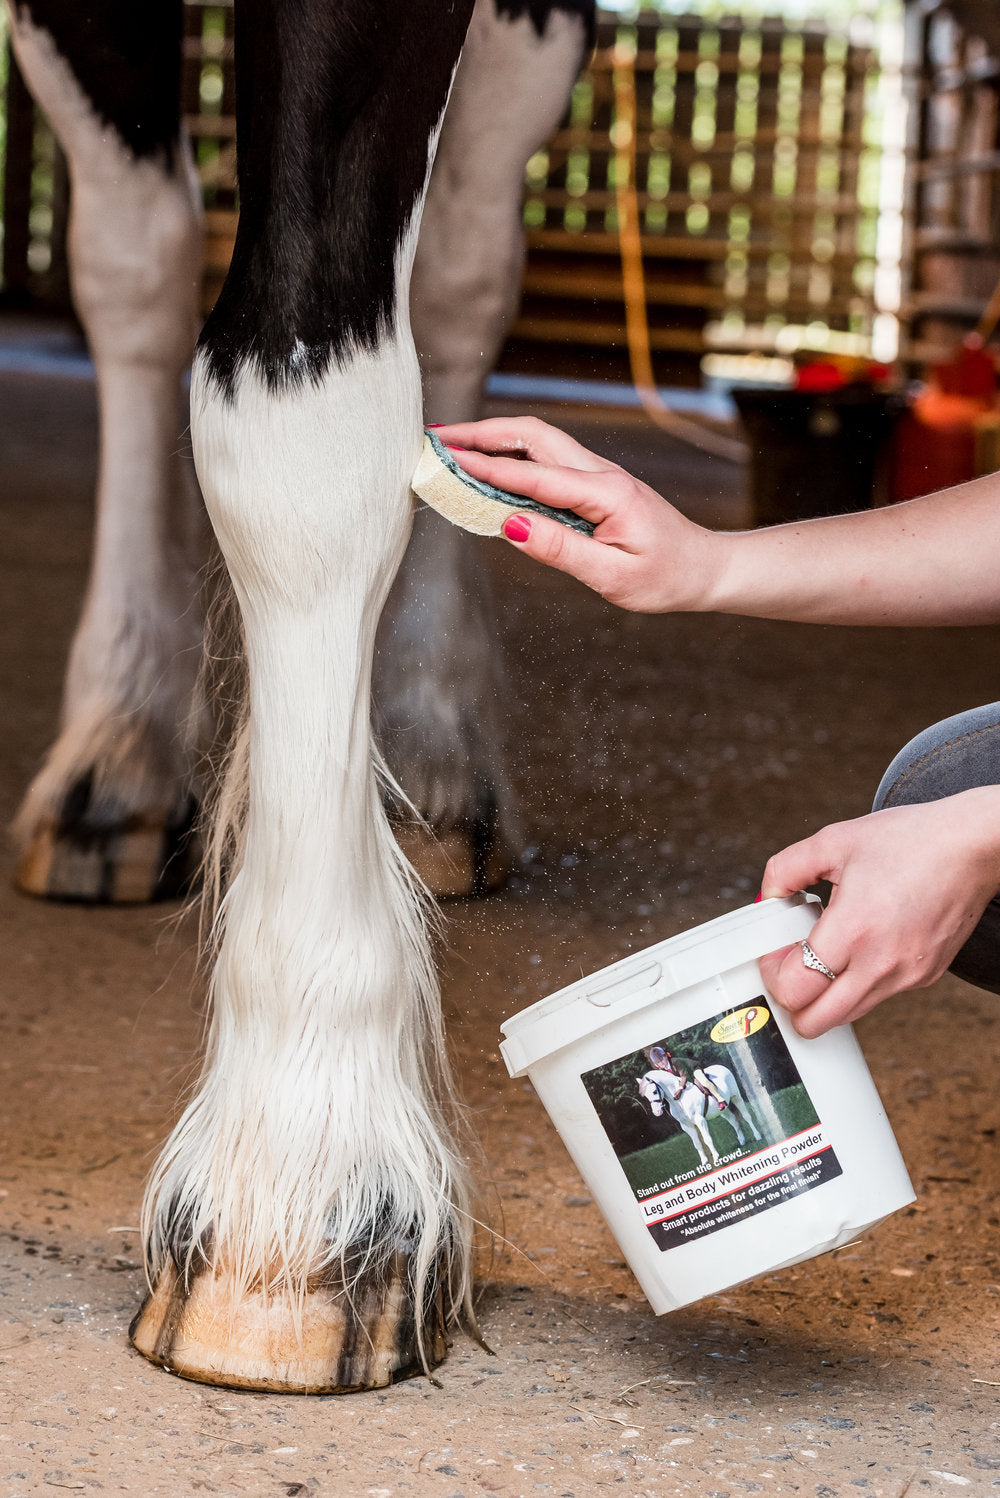 Smart Grooming Leg and Body whitener powder being applied to damp legs to accentuate whiteness. applied